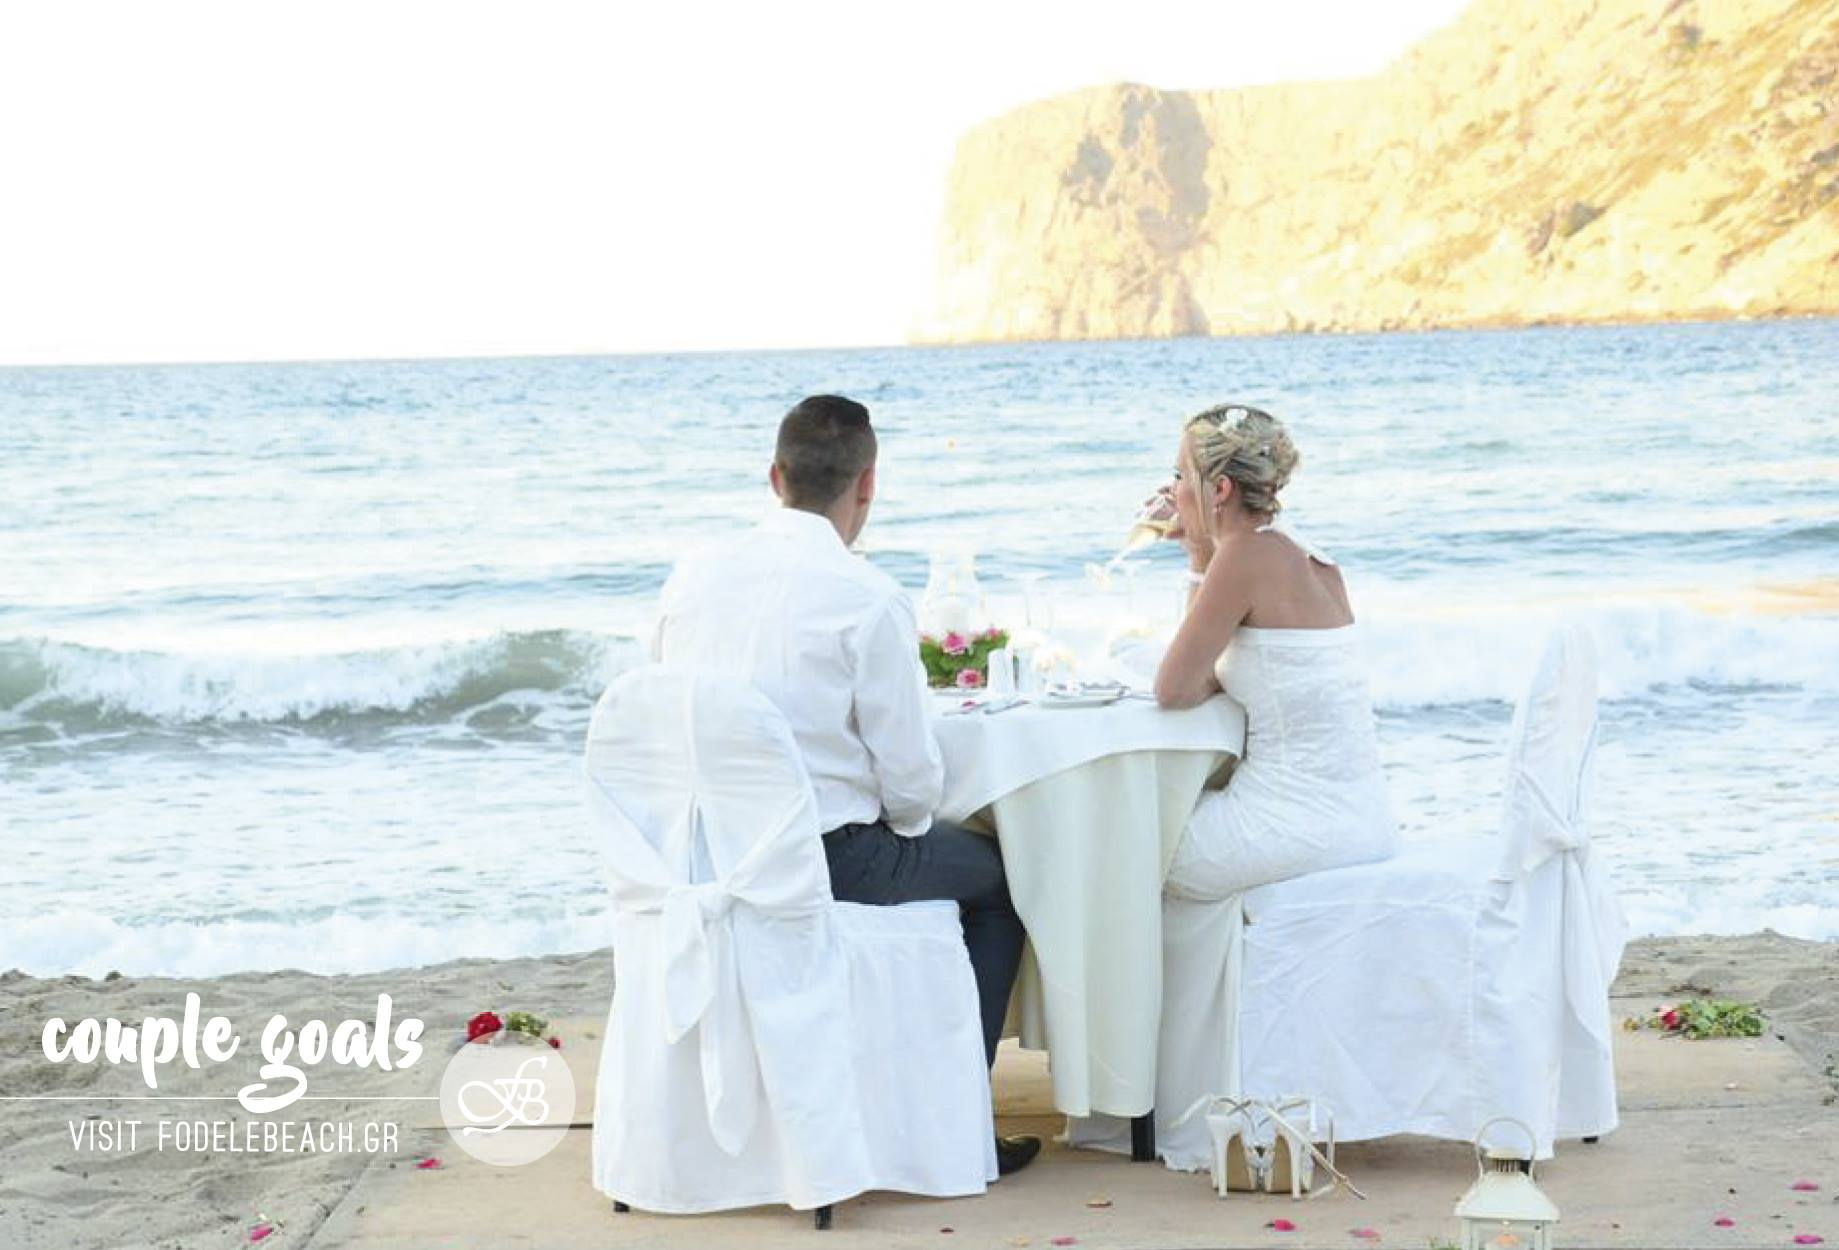 Romantic Dining at Fodele Bay